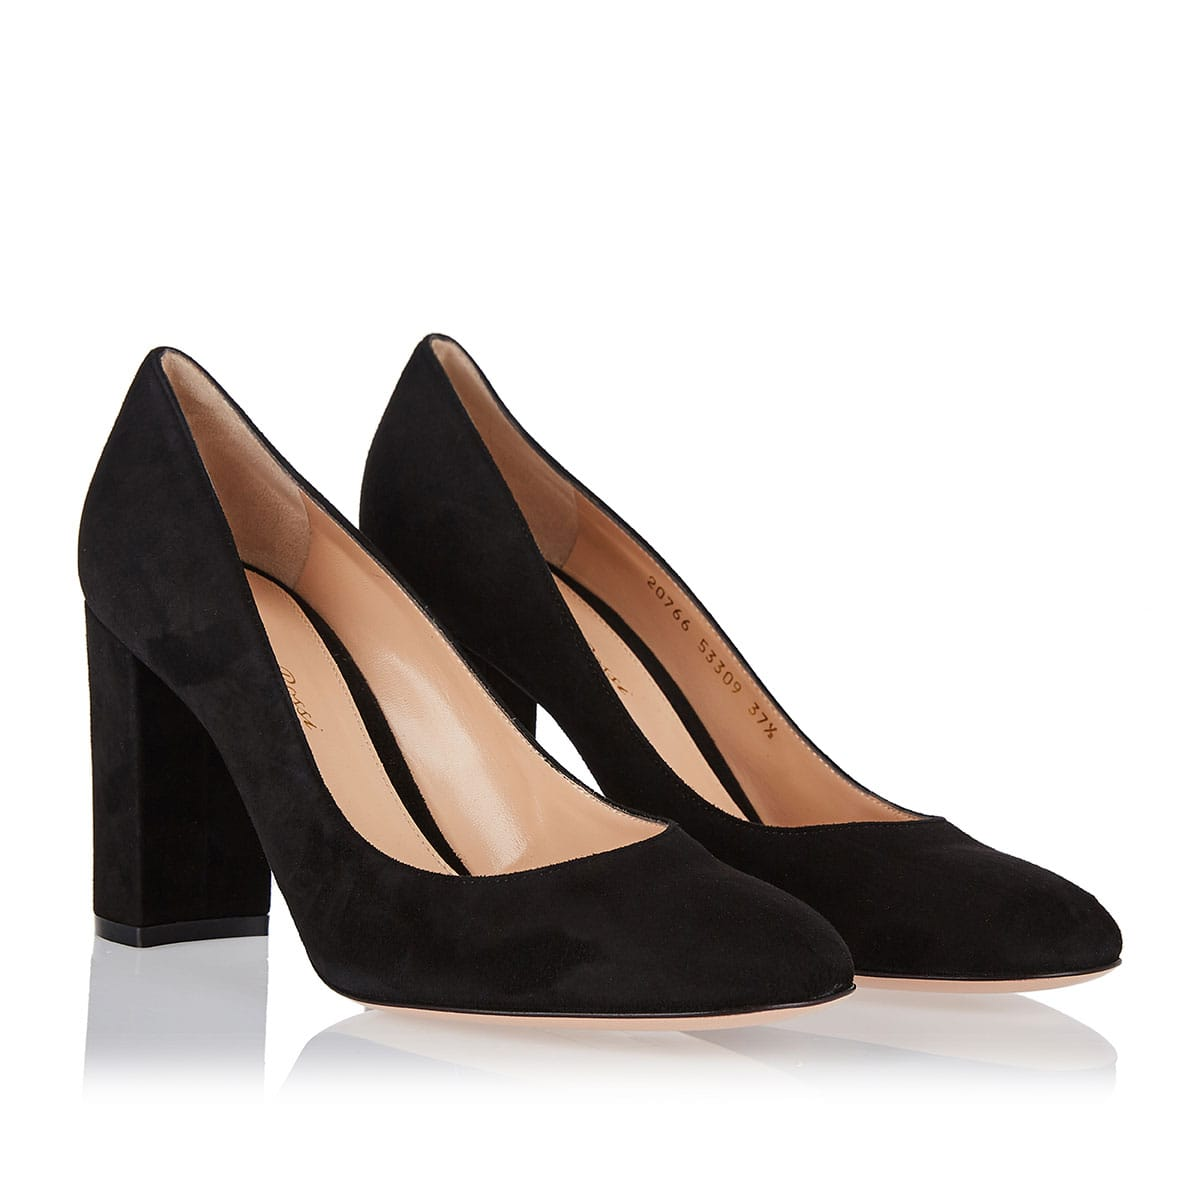 Piper 85 block-heel suede pumps